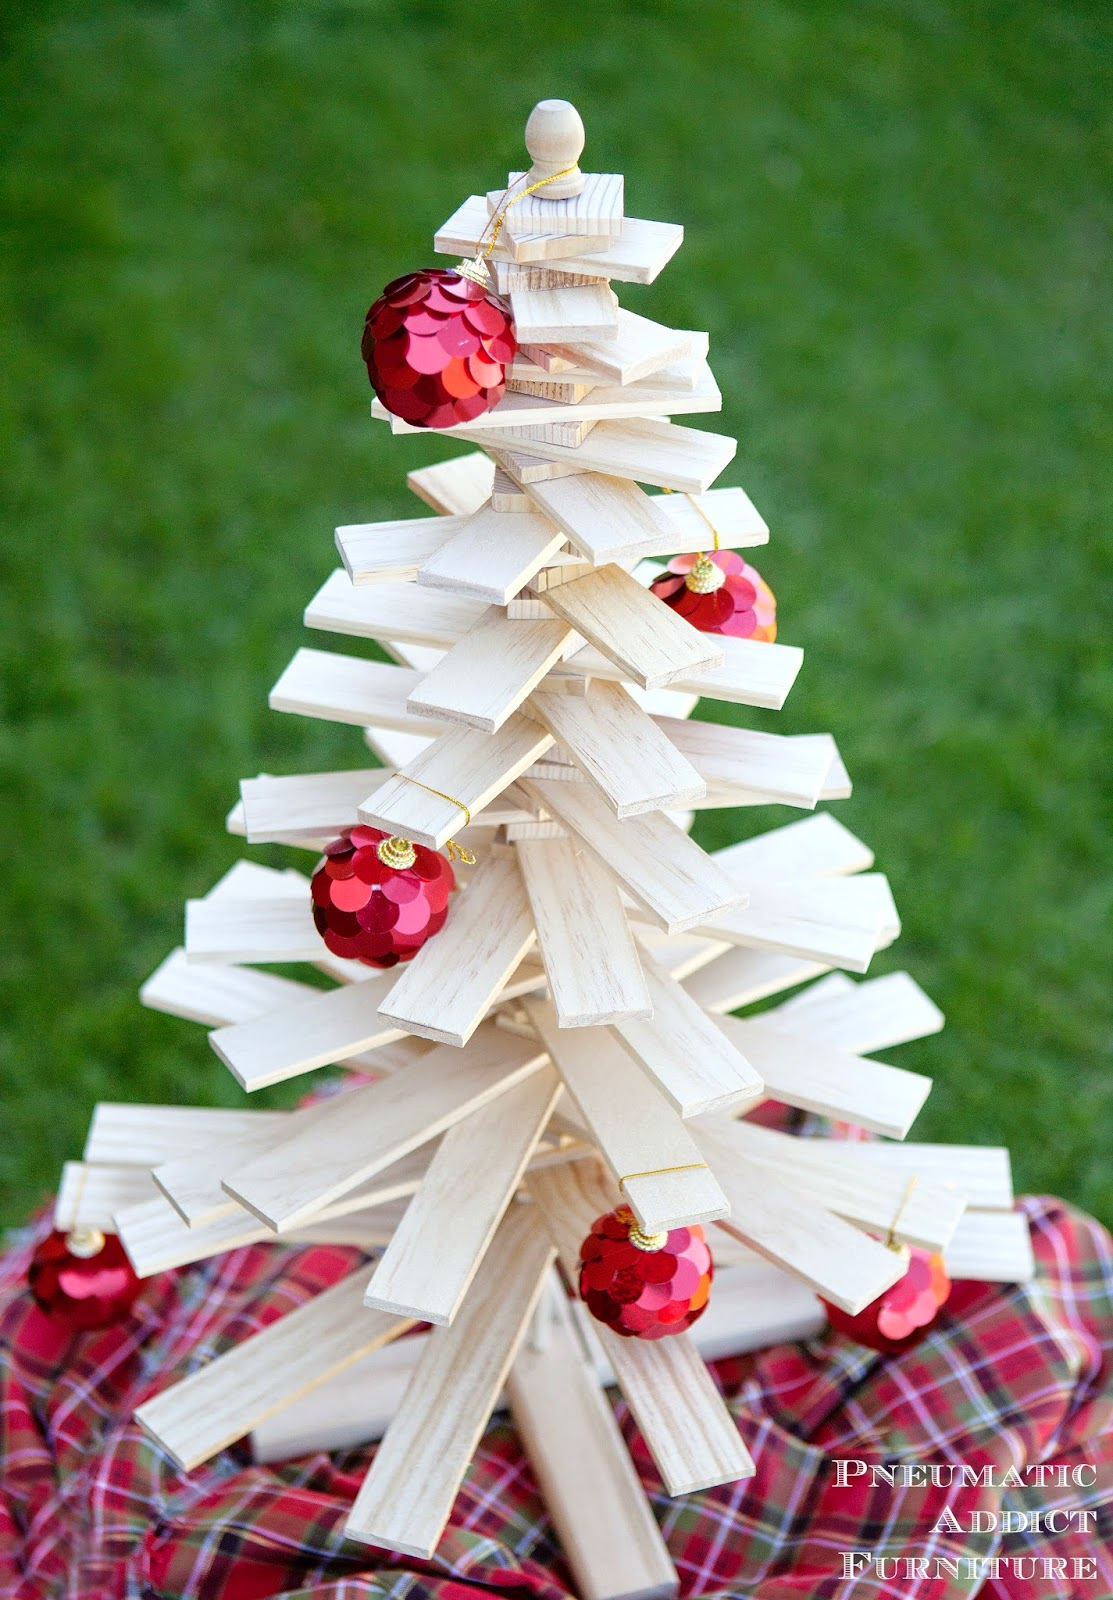 Pneumatic addict diy wood slat christmas tree solutioingenieria Image collections